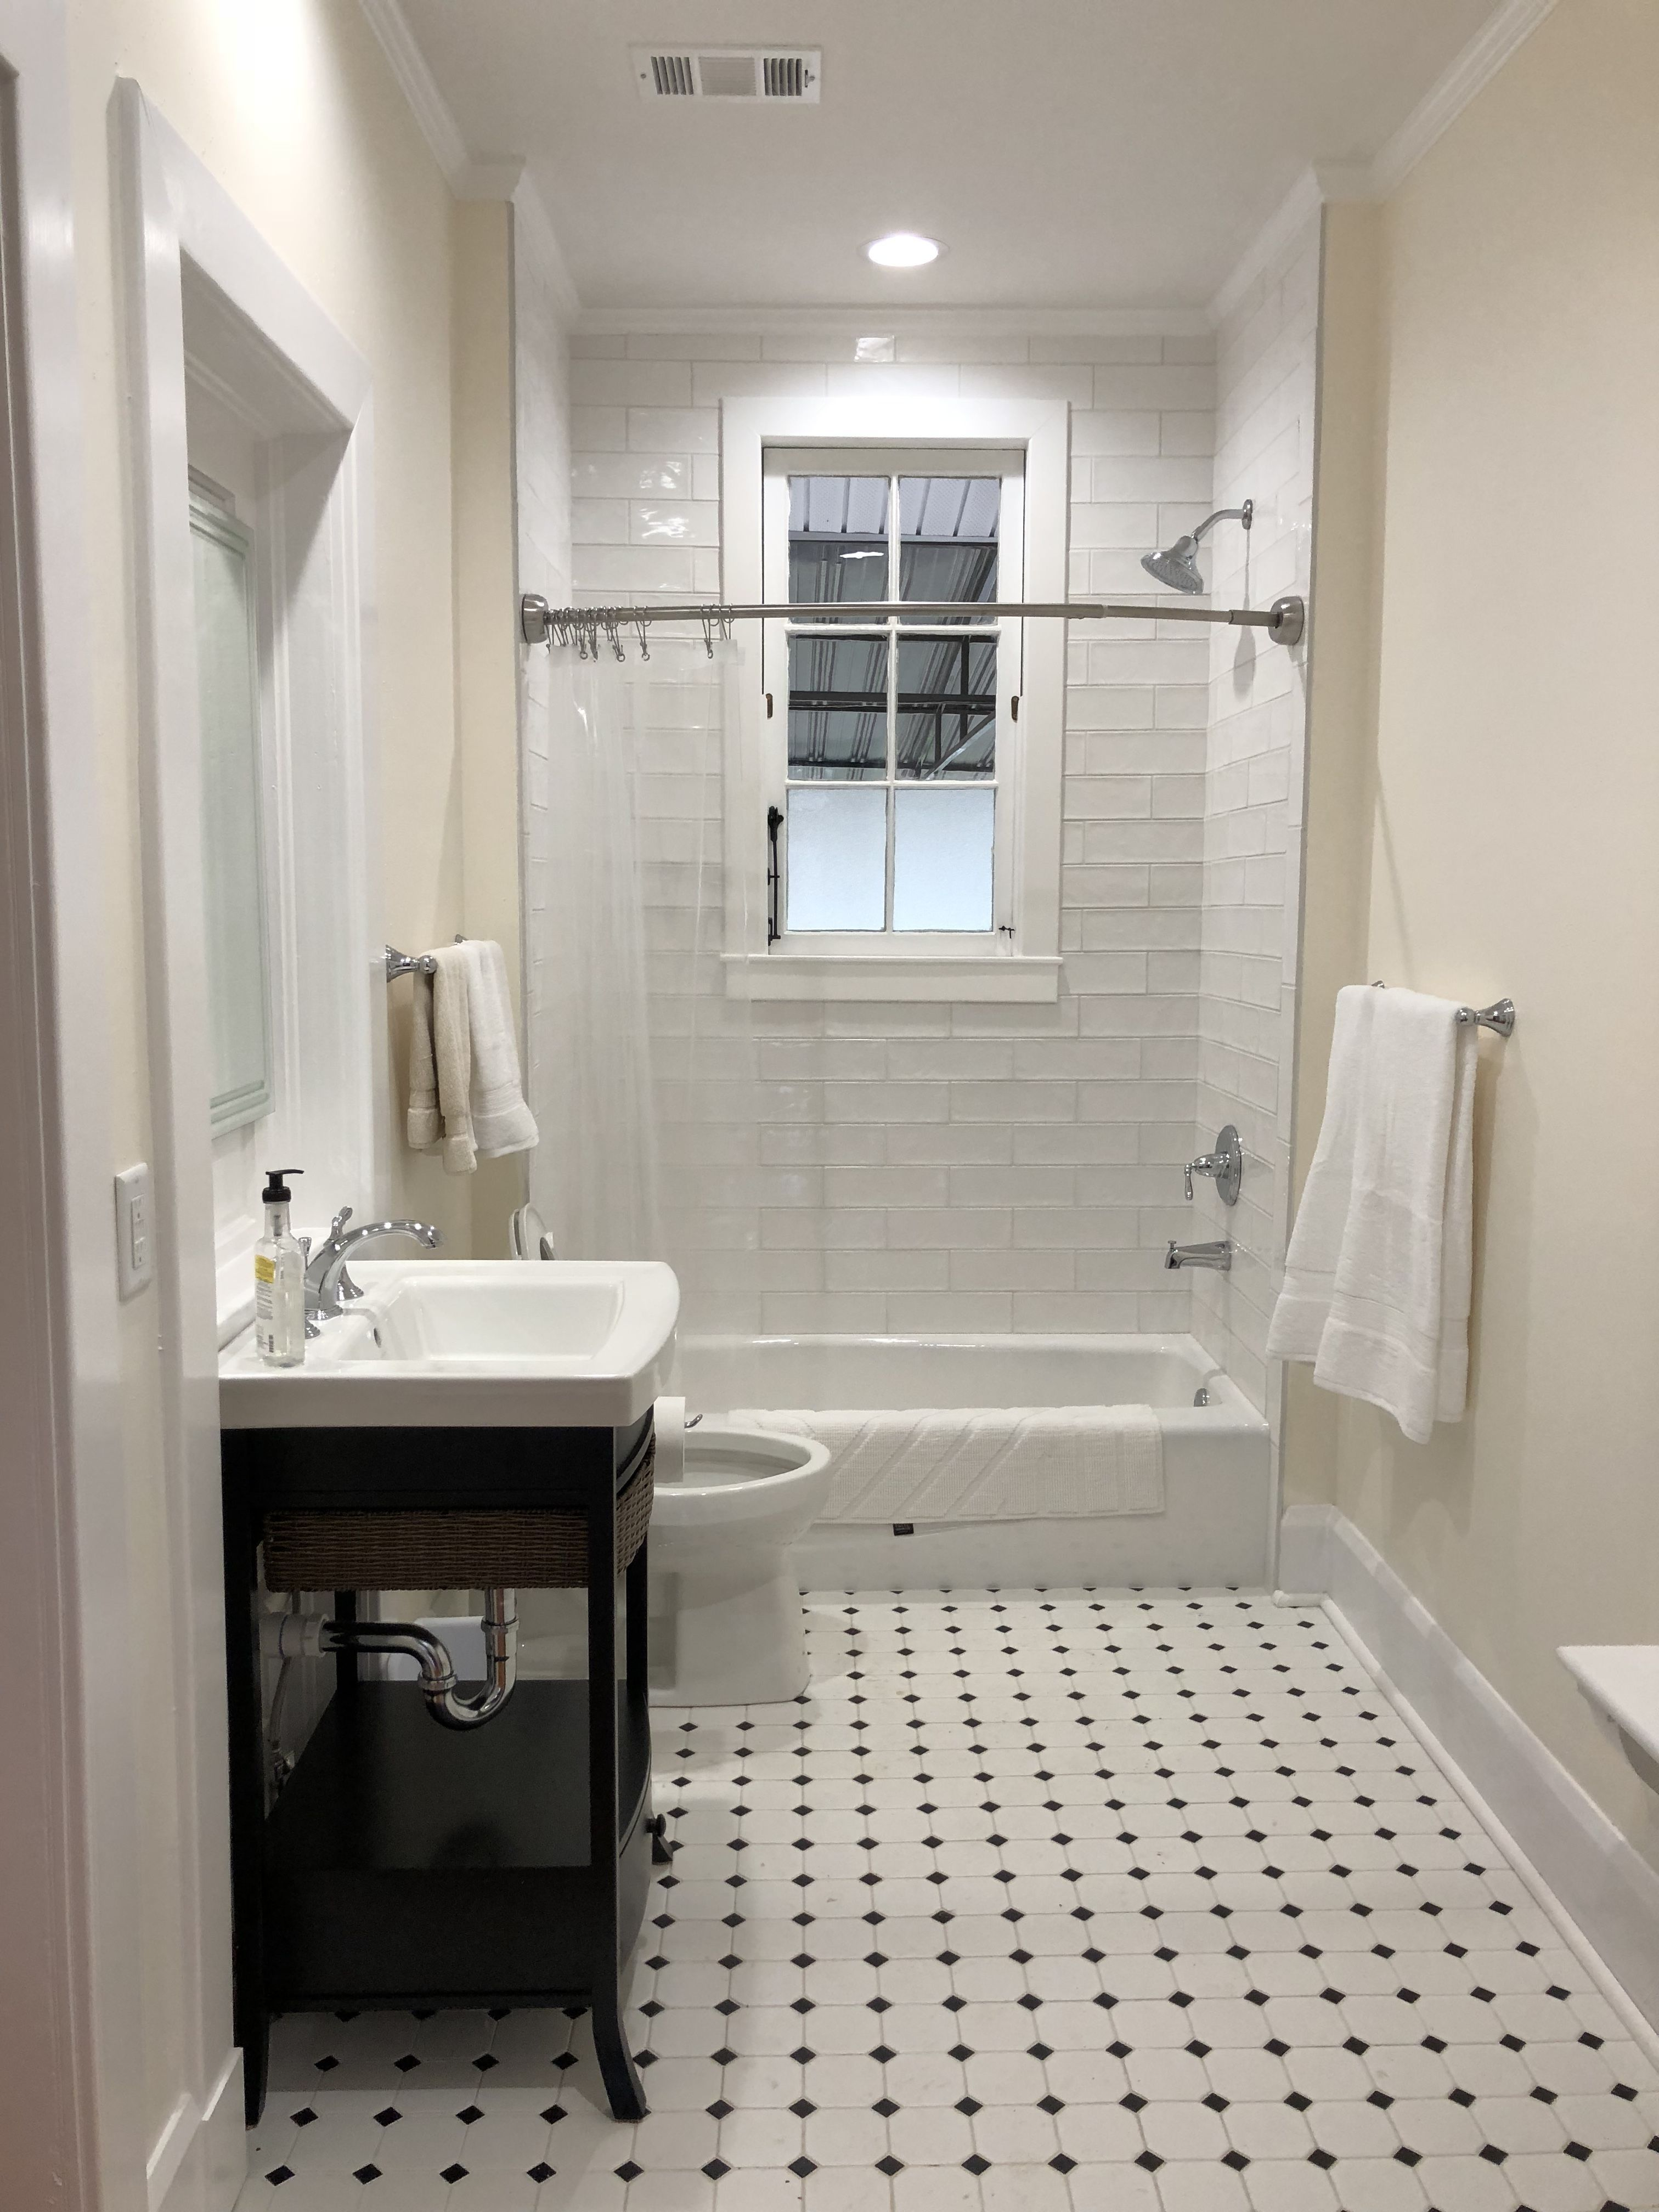 cool bathroom concepts may 2018 small bathroom layout on amazing small bathroom designs and ideas id=82171